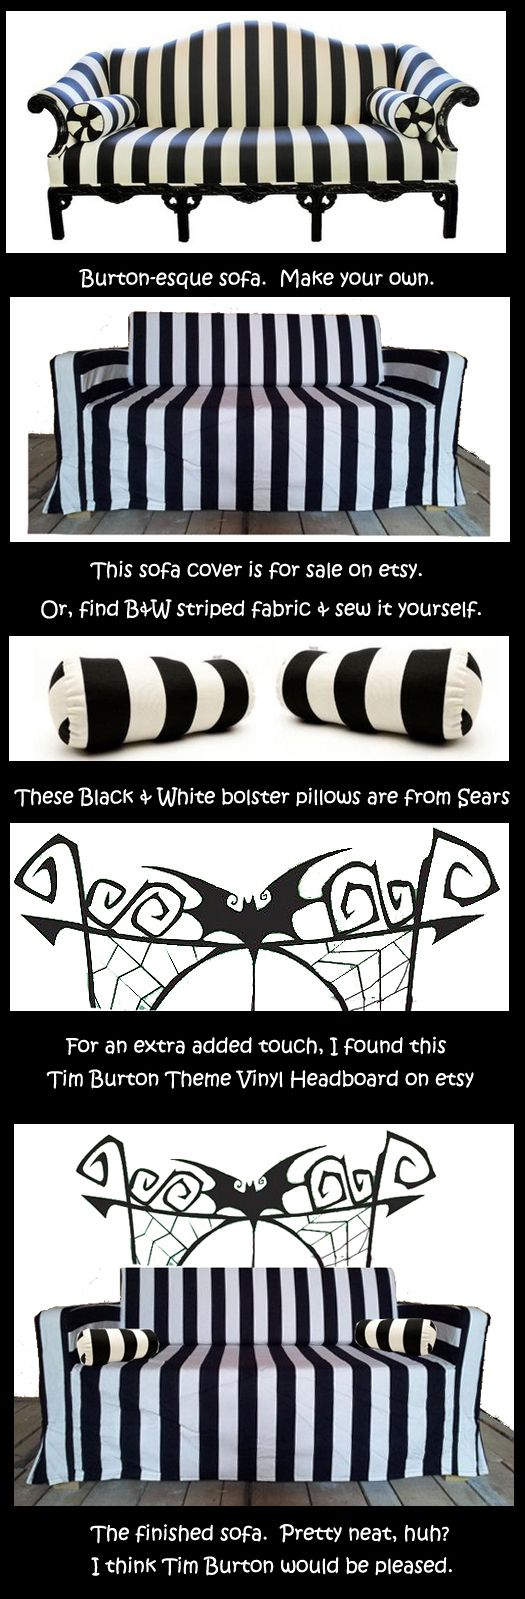 Make your own Burton-esque sofa! Tim Burton Sofa Couch -- you could use it year-round! Or, at least during your Halloween with Tim Burton Party!